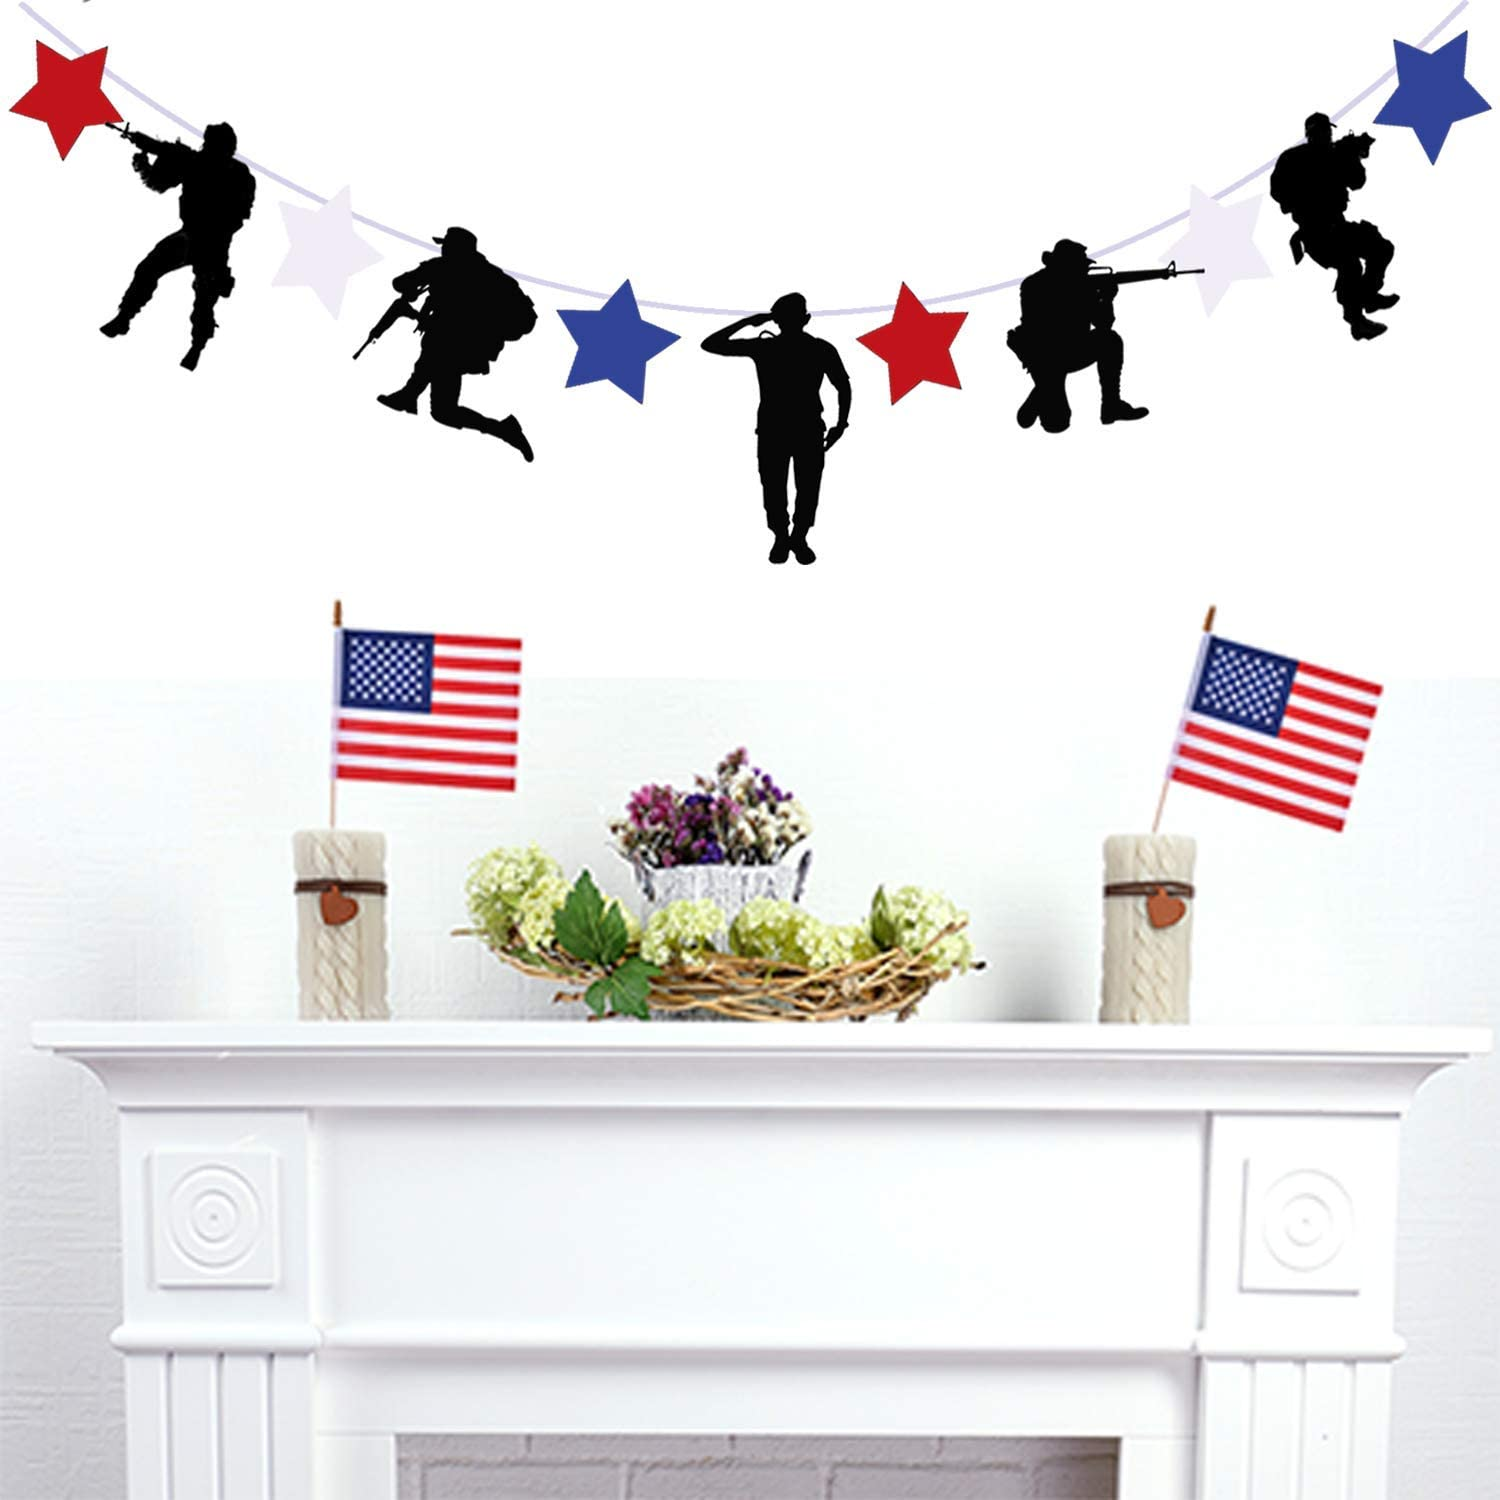 Gz Party Patriotic Soldier Decoration Banner, 4th of July Memorial Day Decoration Supplies,Army Military Camouflage Party Decoration Supplies (Black, 1pc)